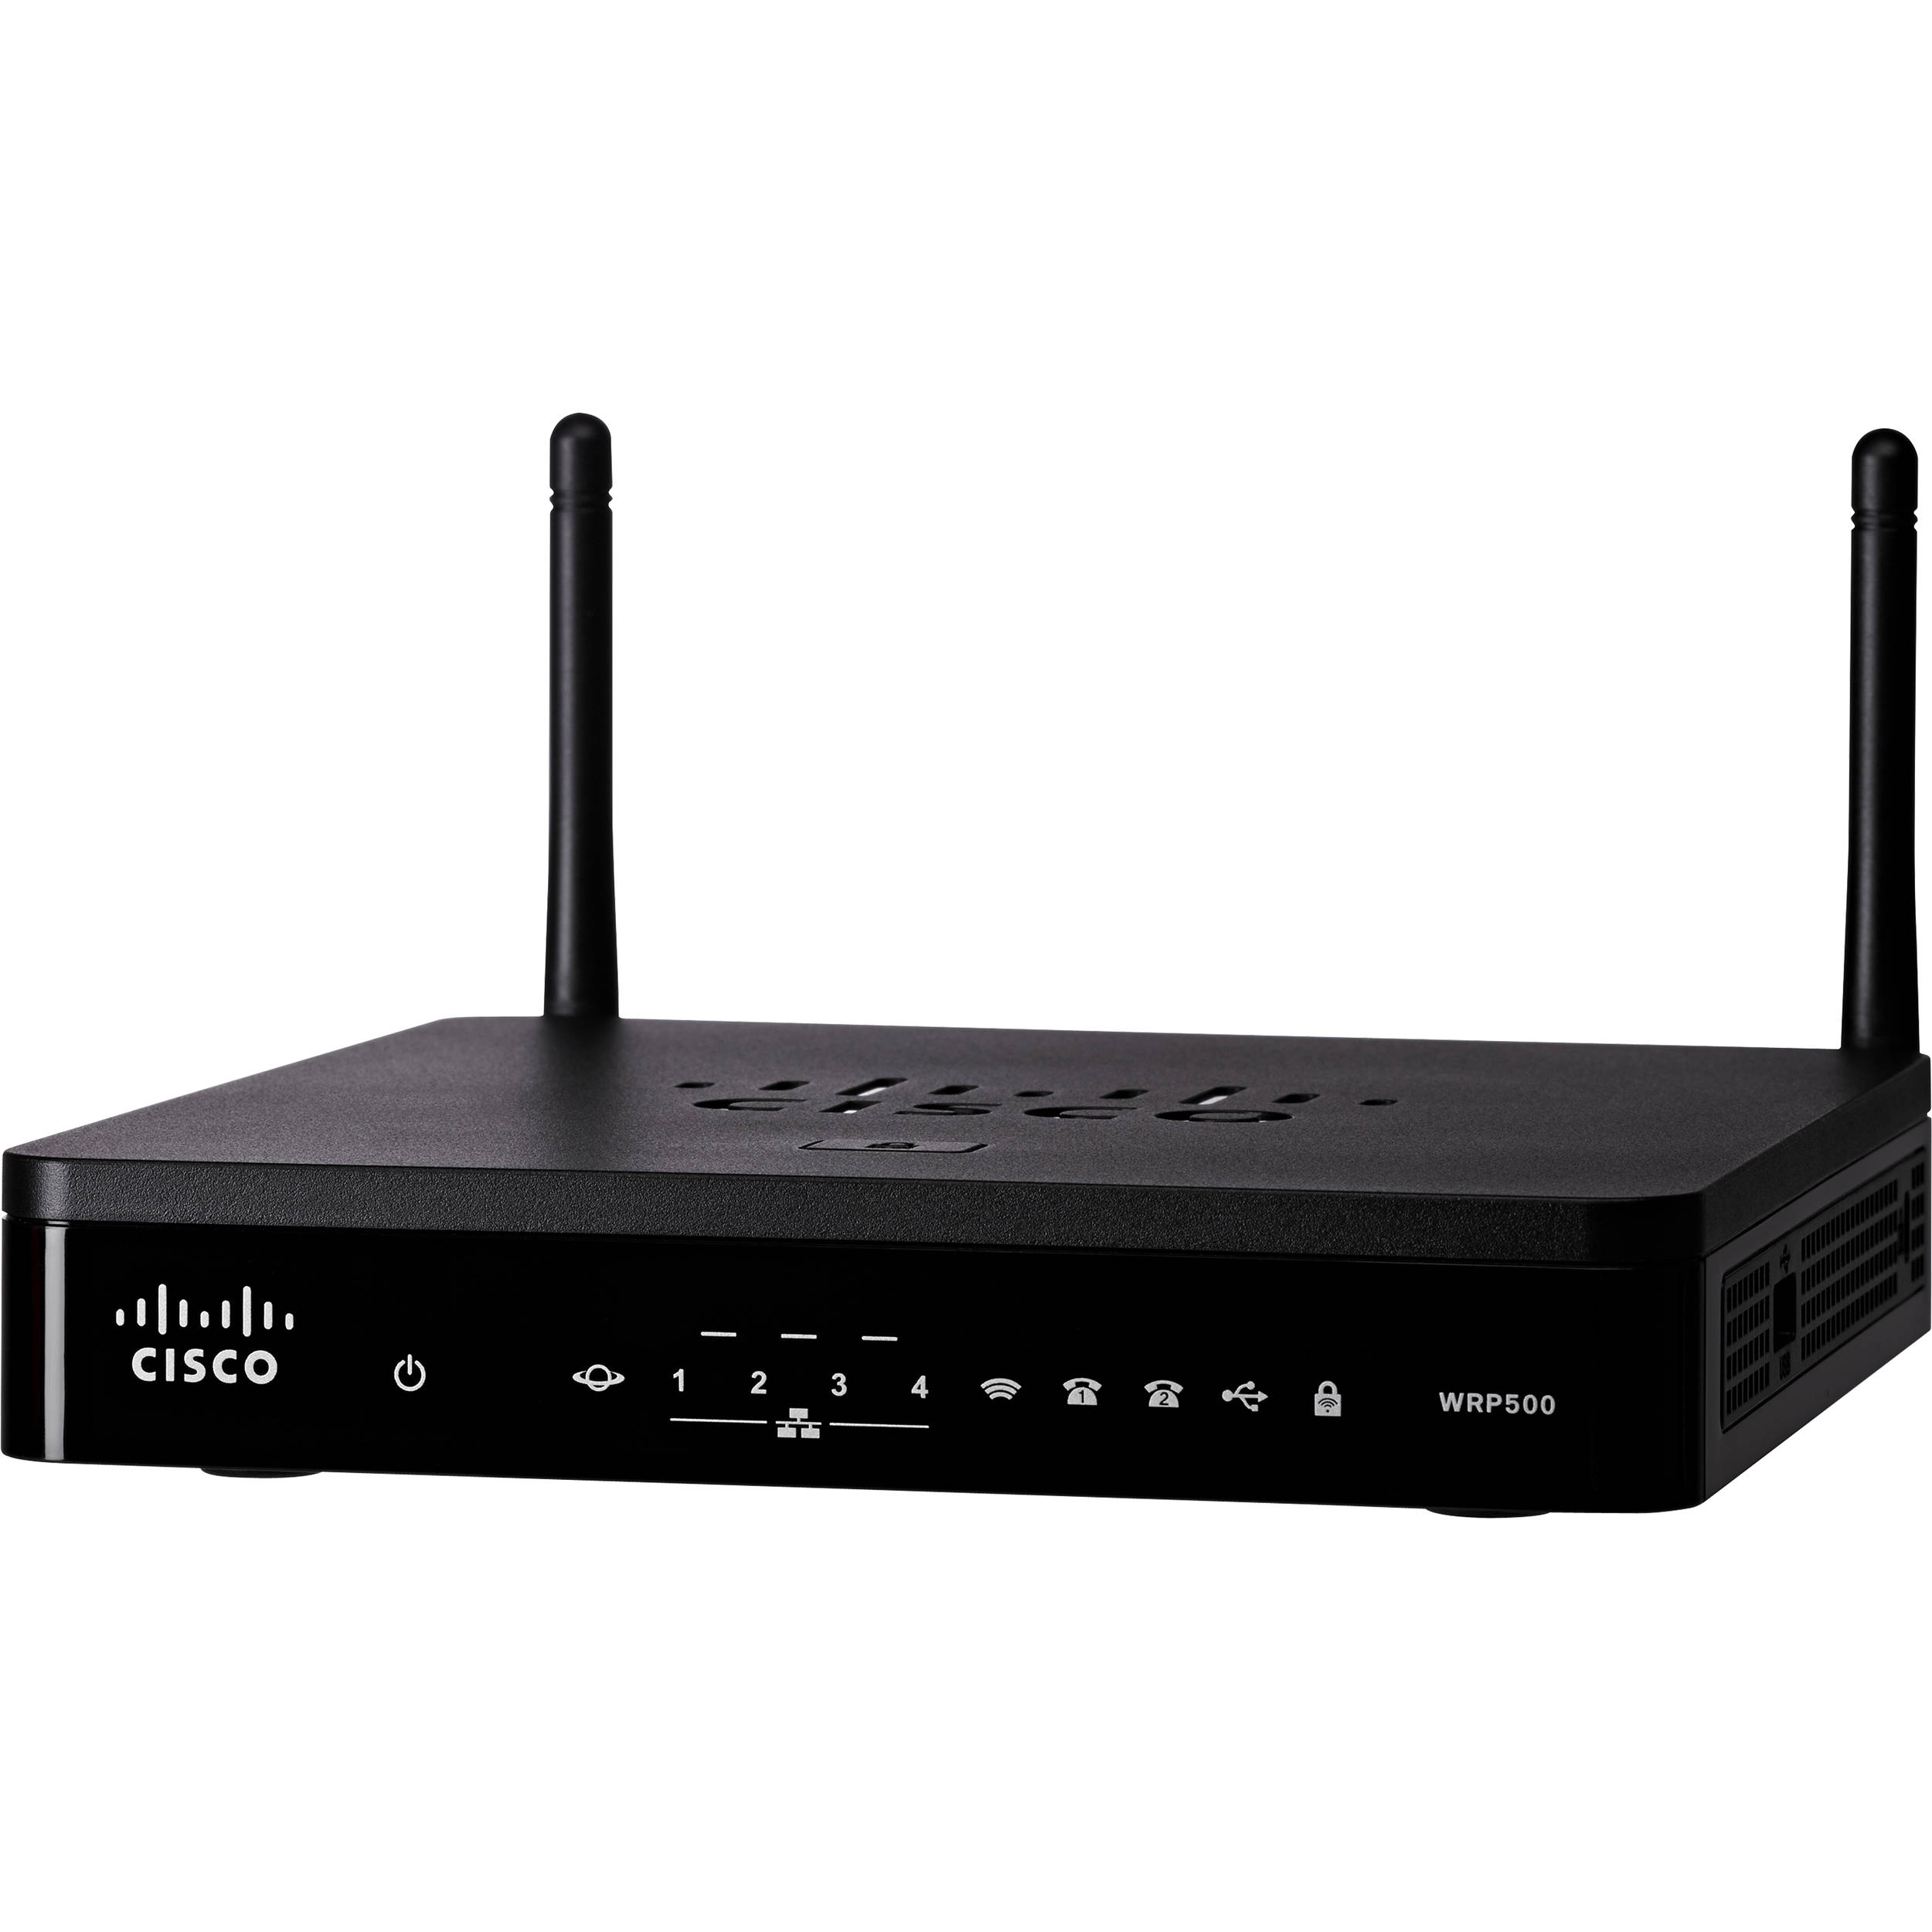 Cisco WRP500-A-K9 Wireless-AC Broadband Router WRP500-A-K9 B&H